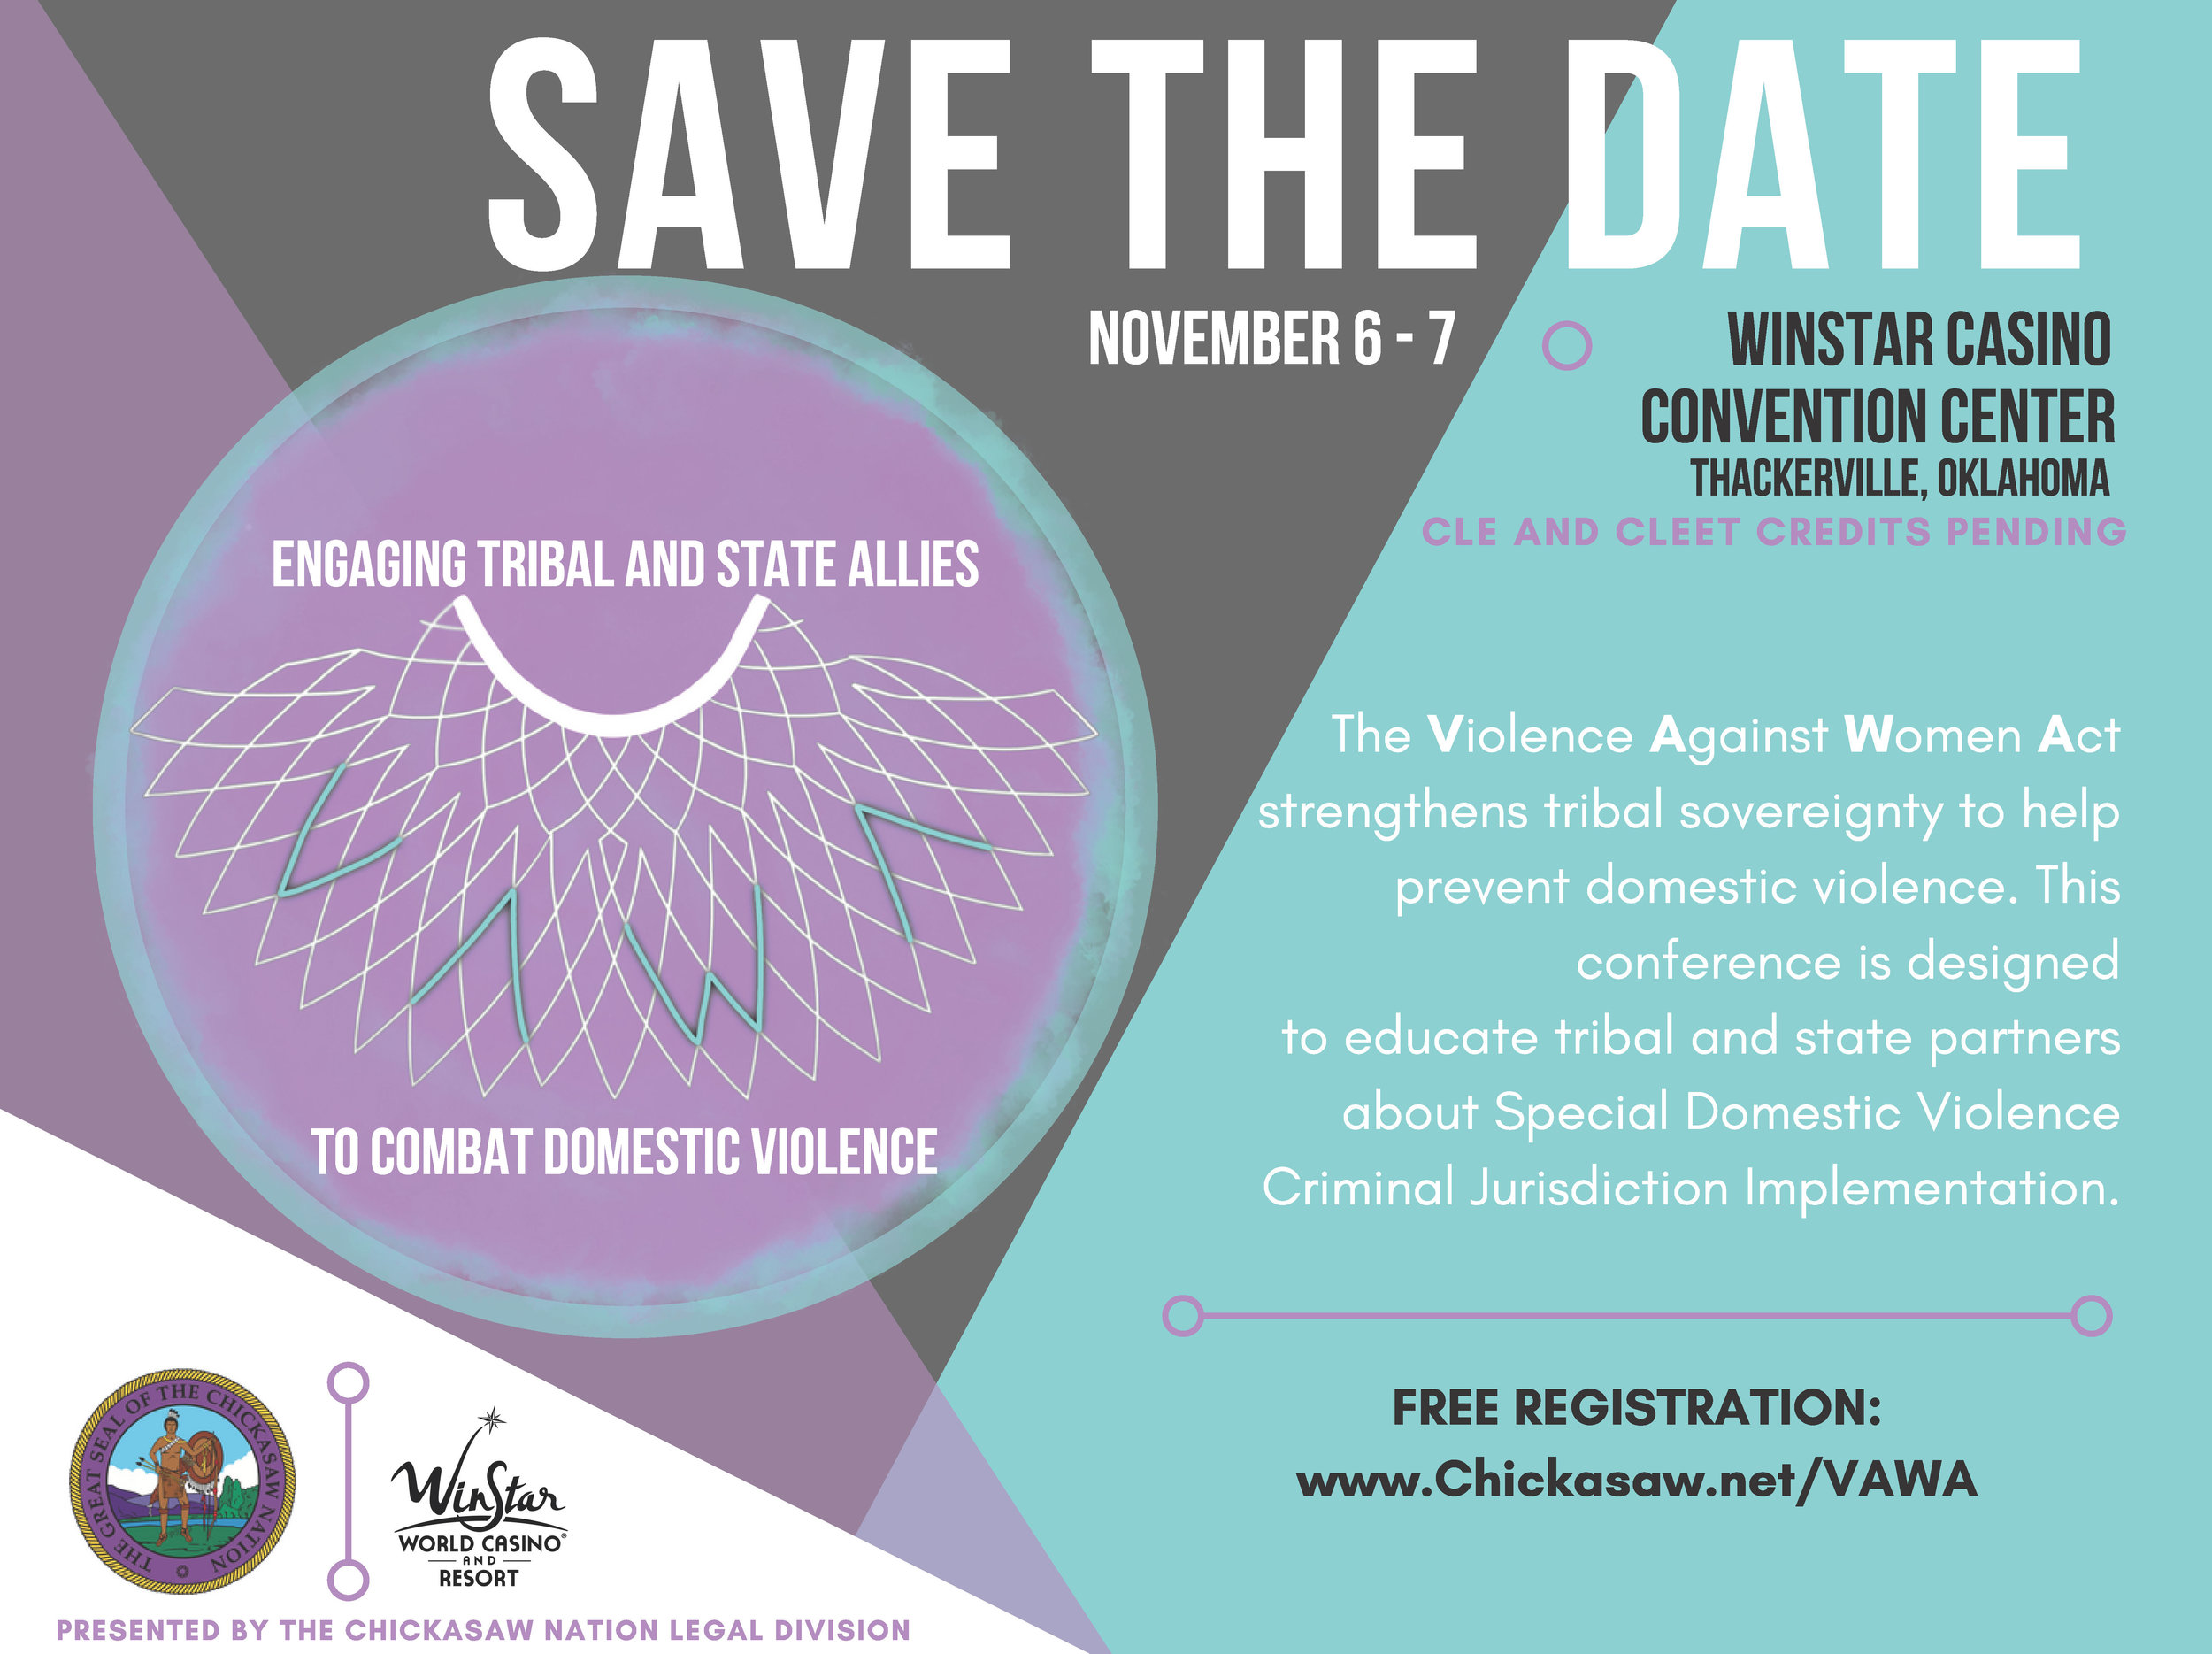 2018-10-04 Save The Date - VAWA Conference- Chickasaw Nation.jpg